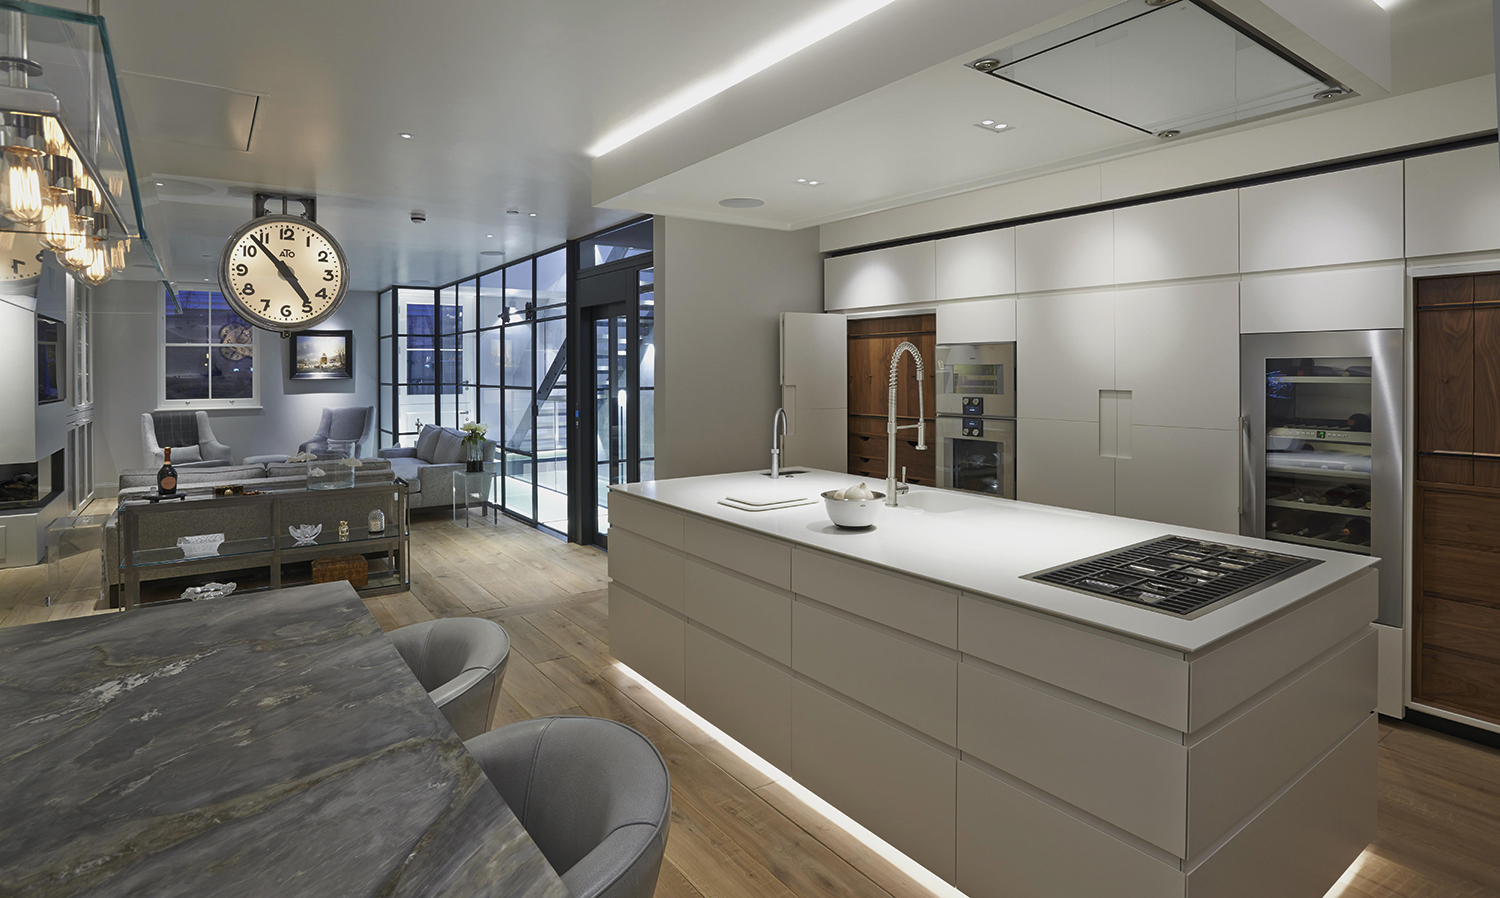 Mews Open Plan Kitchen lighting